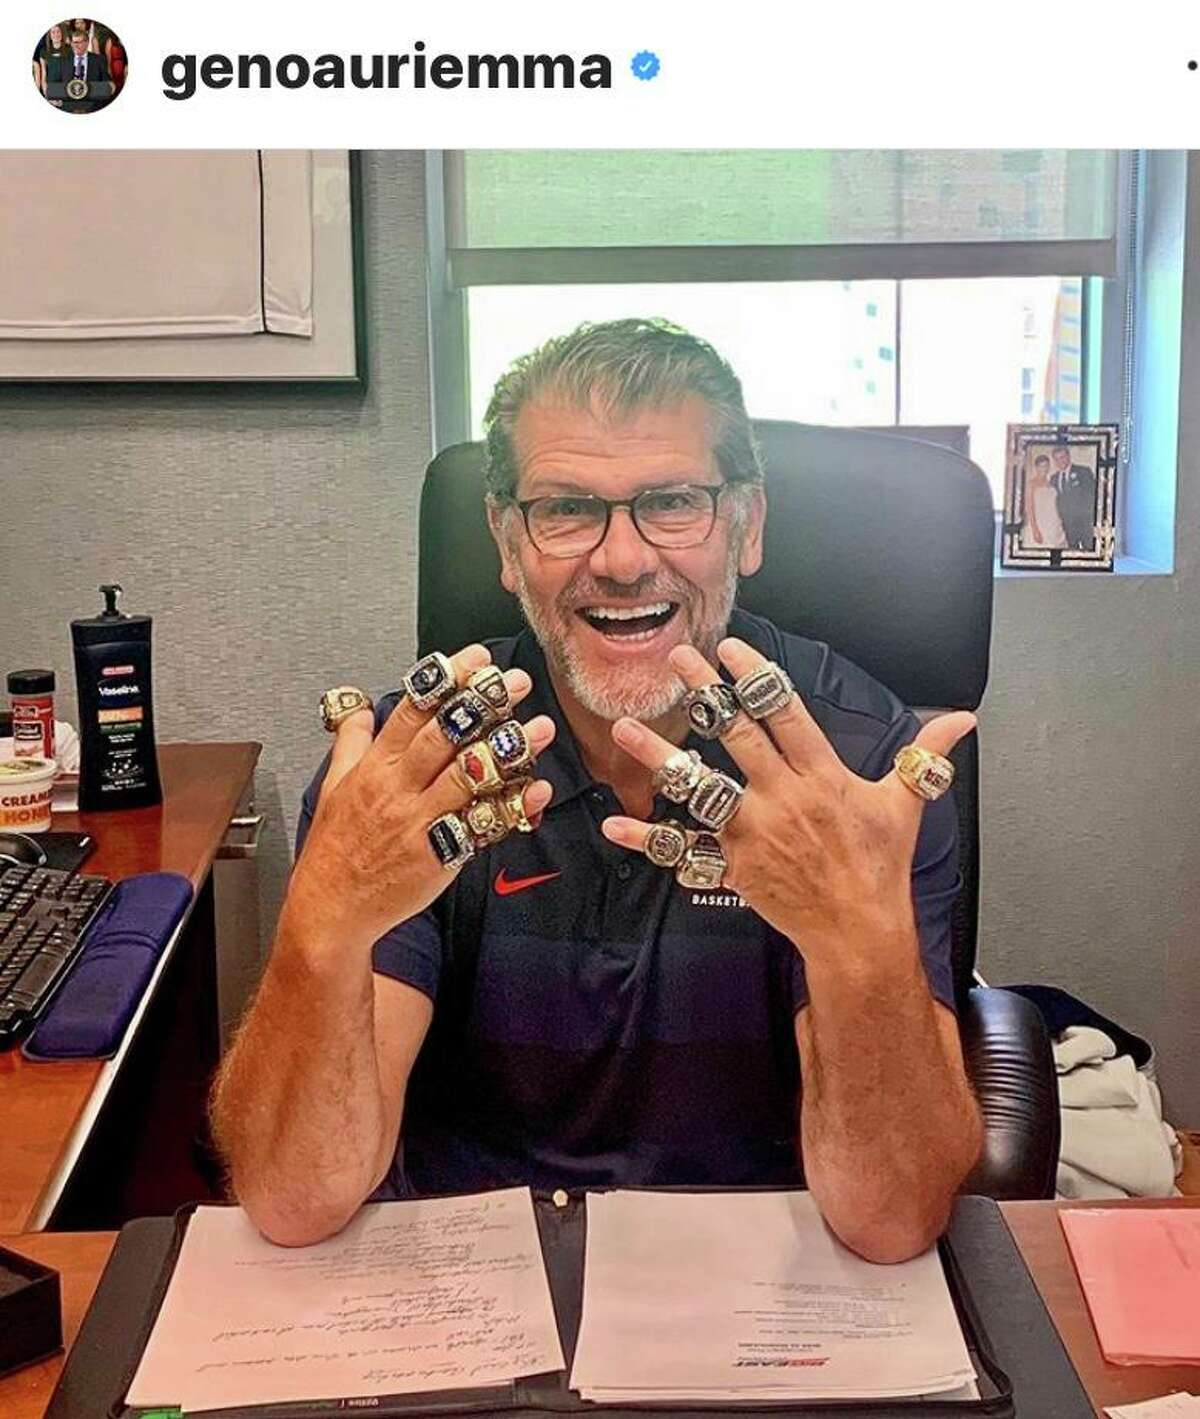 UConn coach Geno Auriemma poses with his championship rings in an Instagram post.